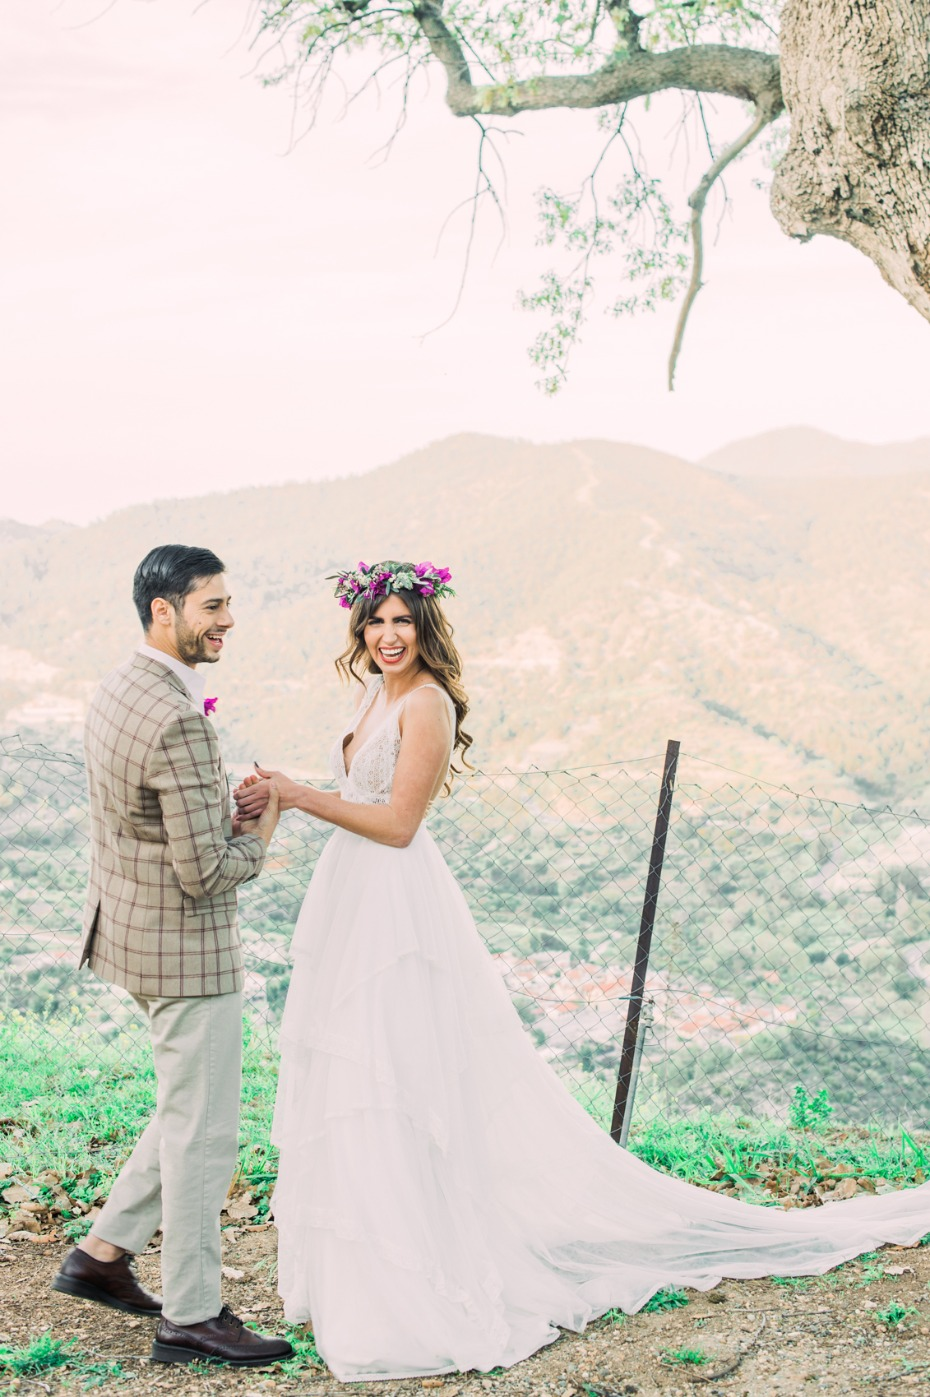 Boho wedding ideas from the Apesia hills